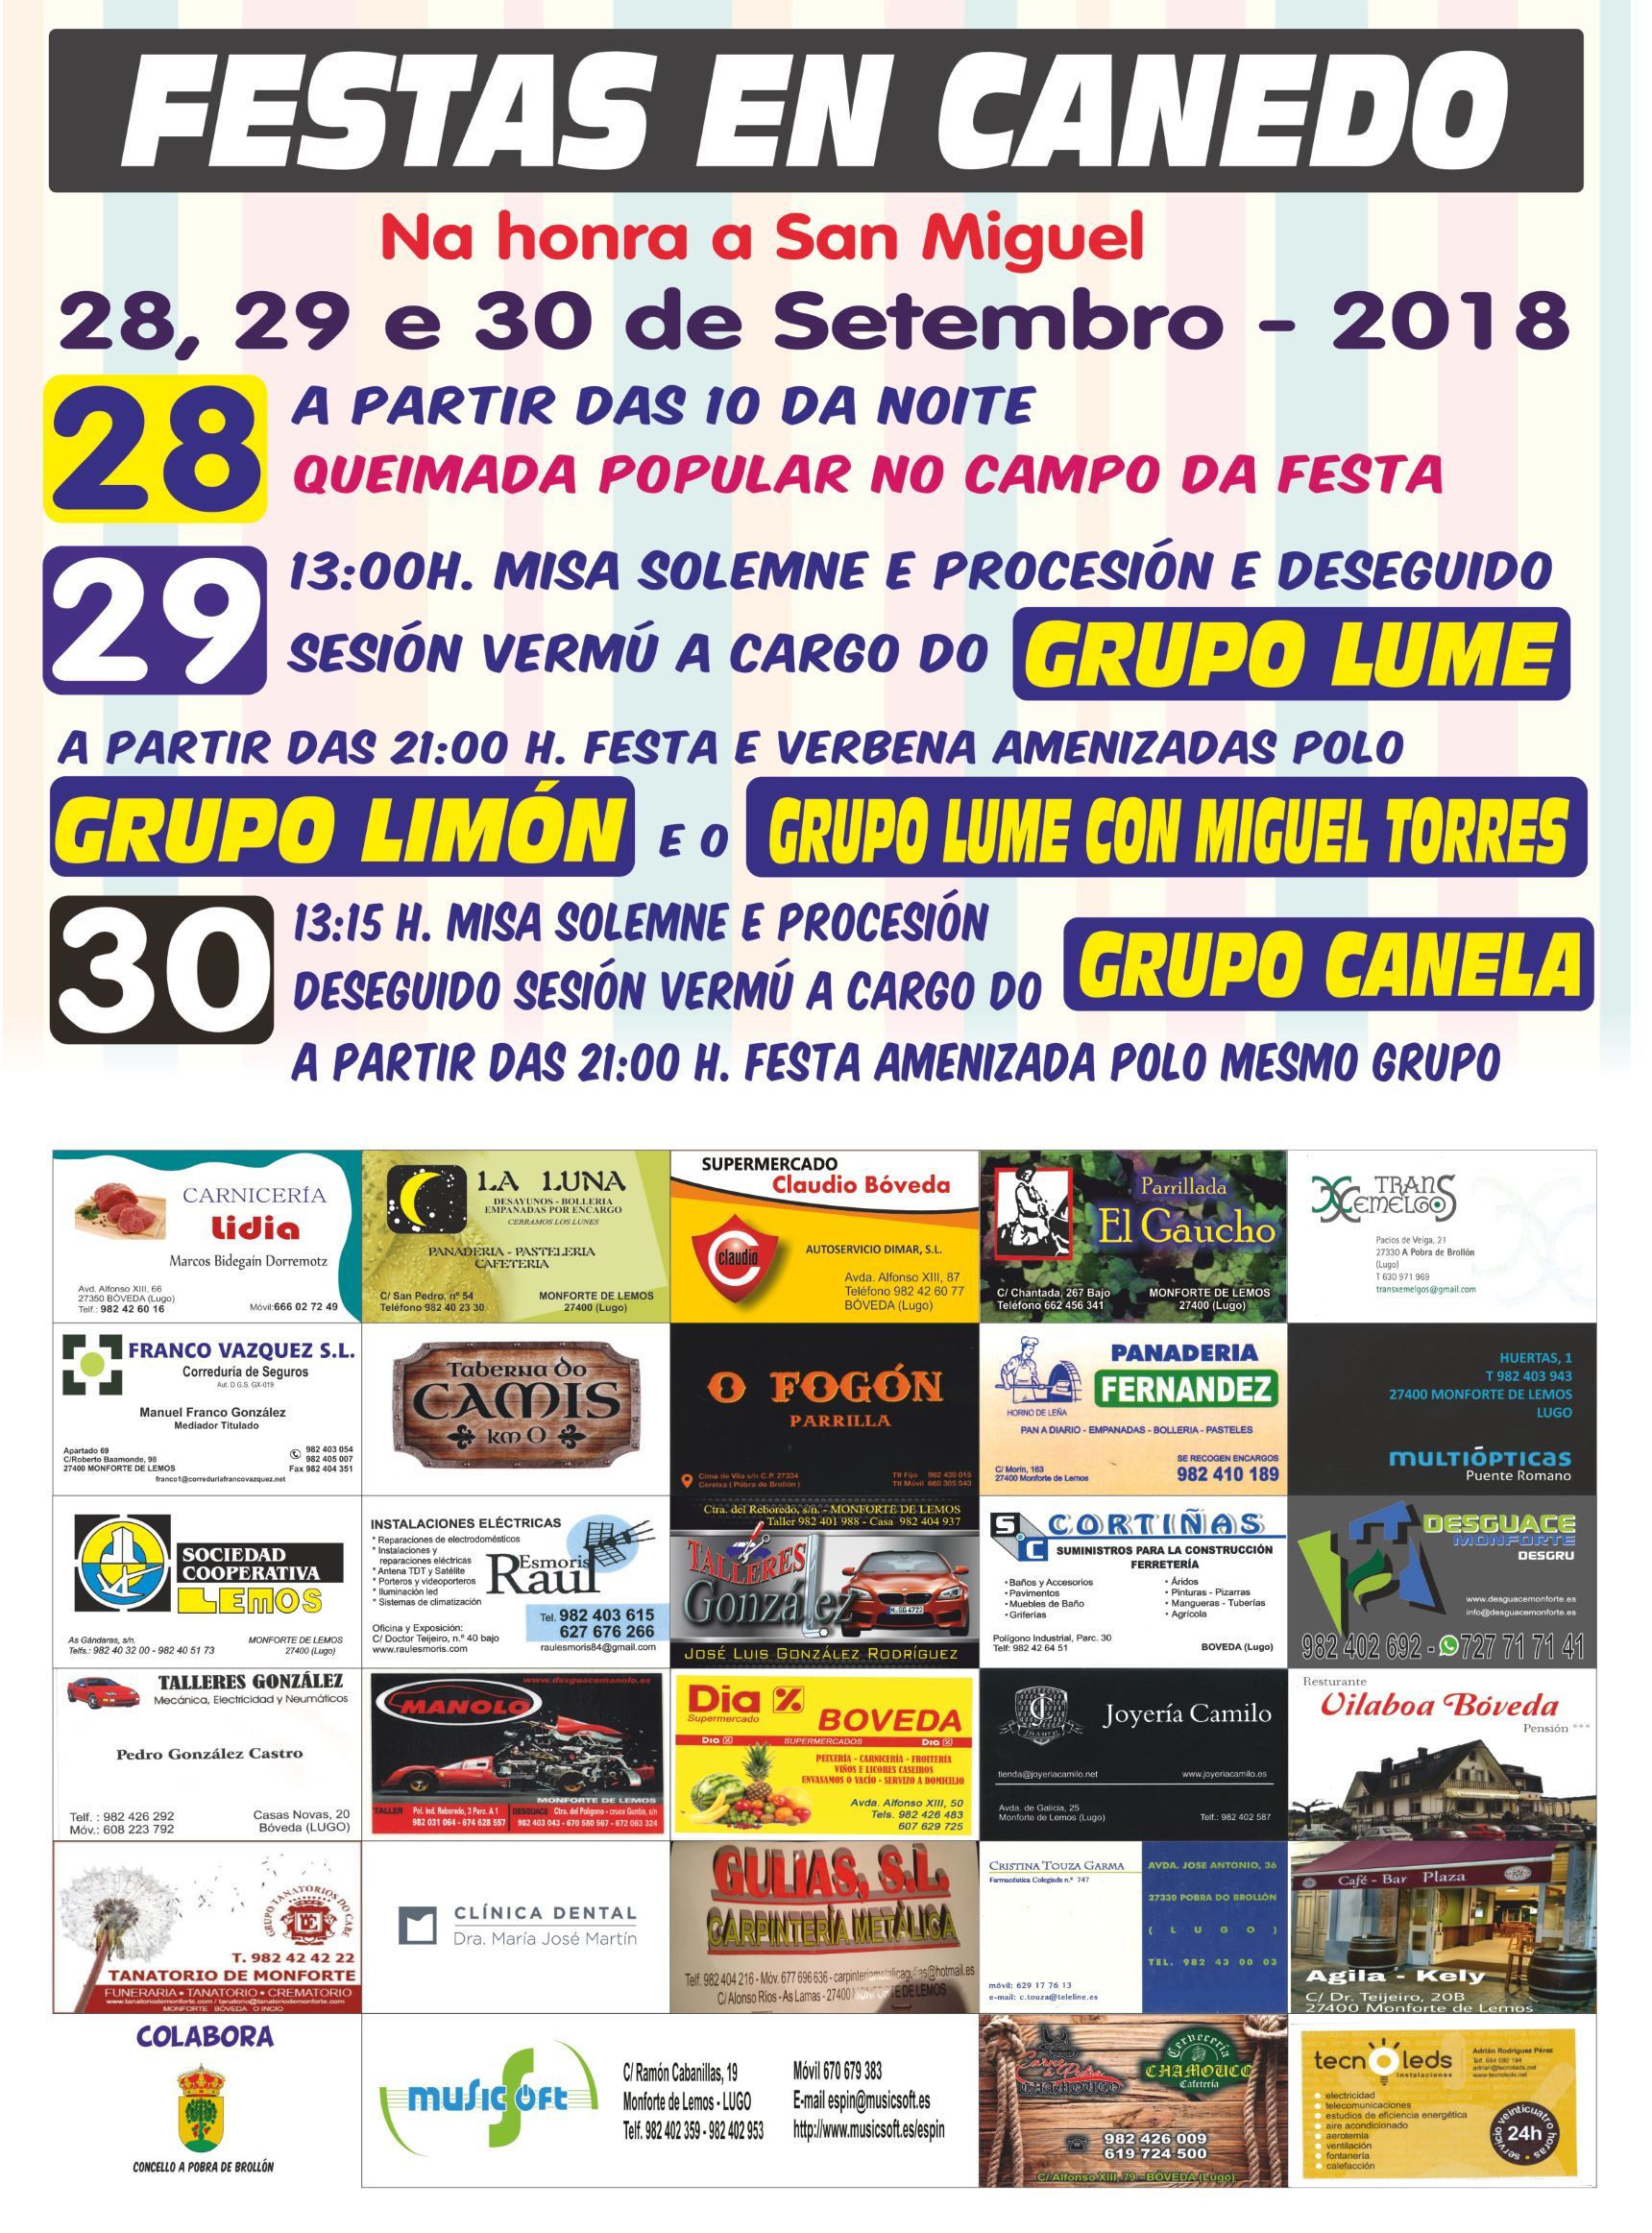 CARTEL FIESTAS CANEDO 2018 low